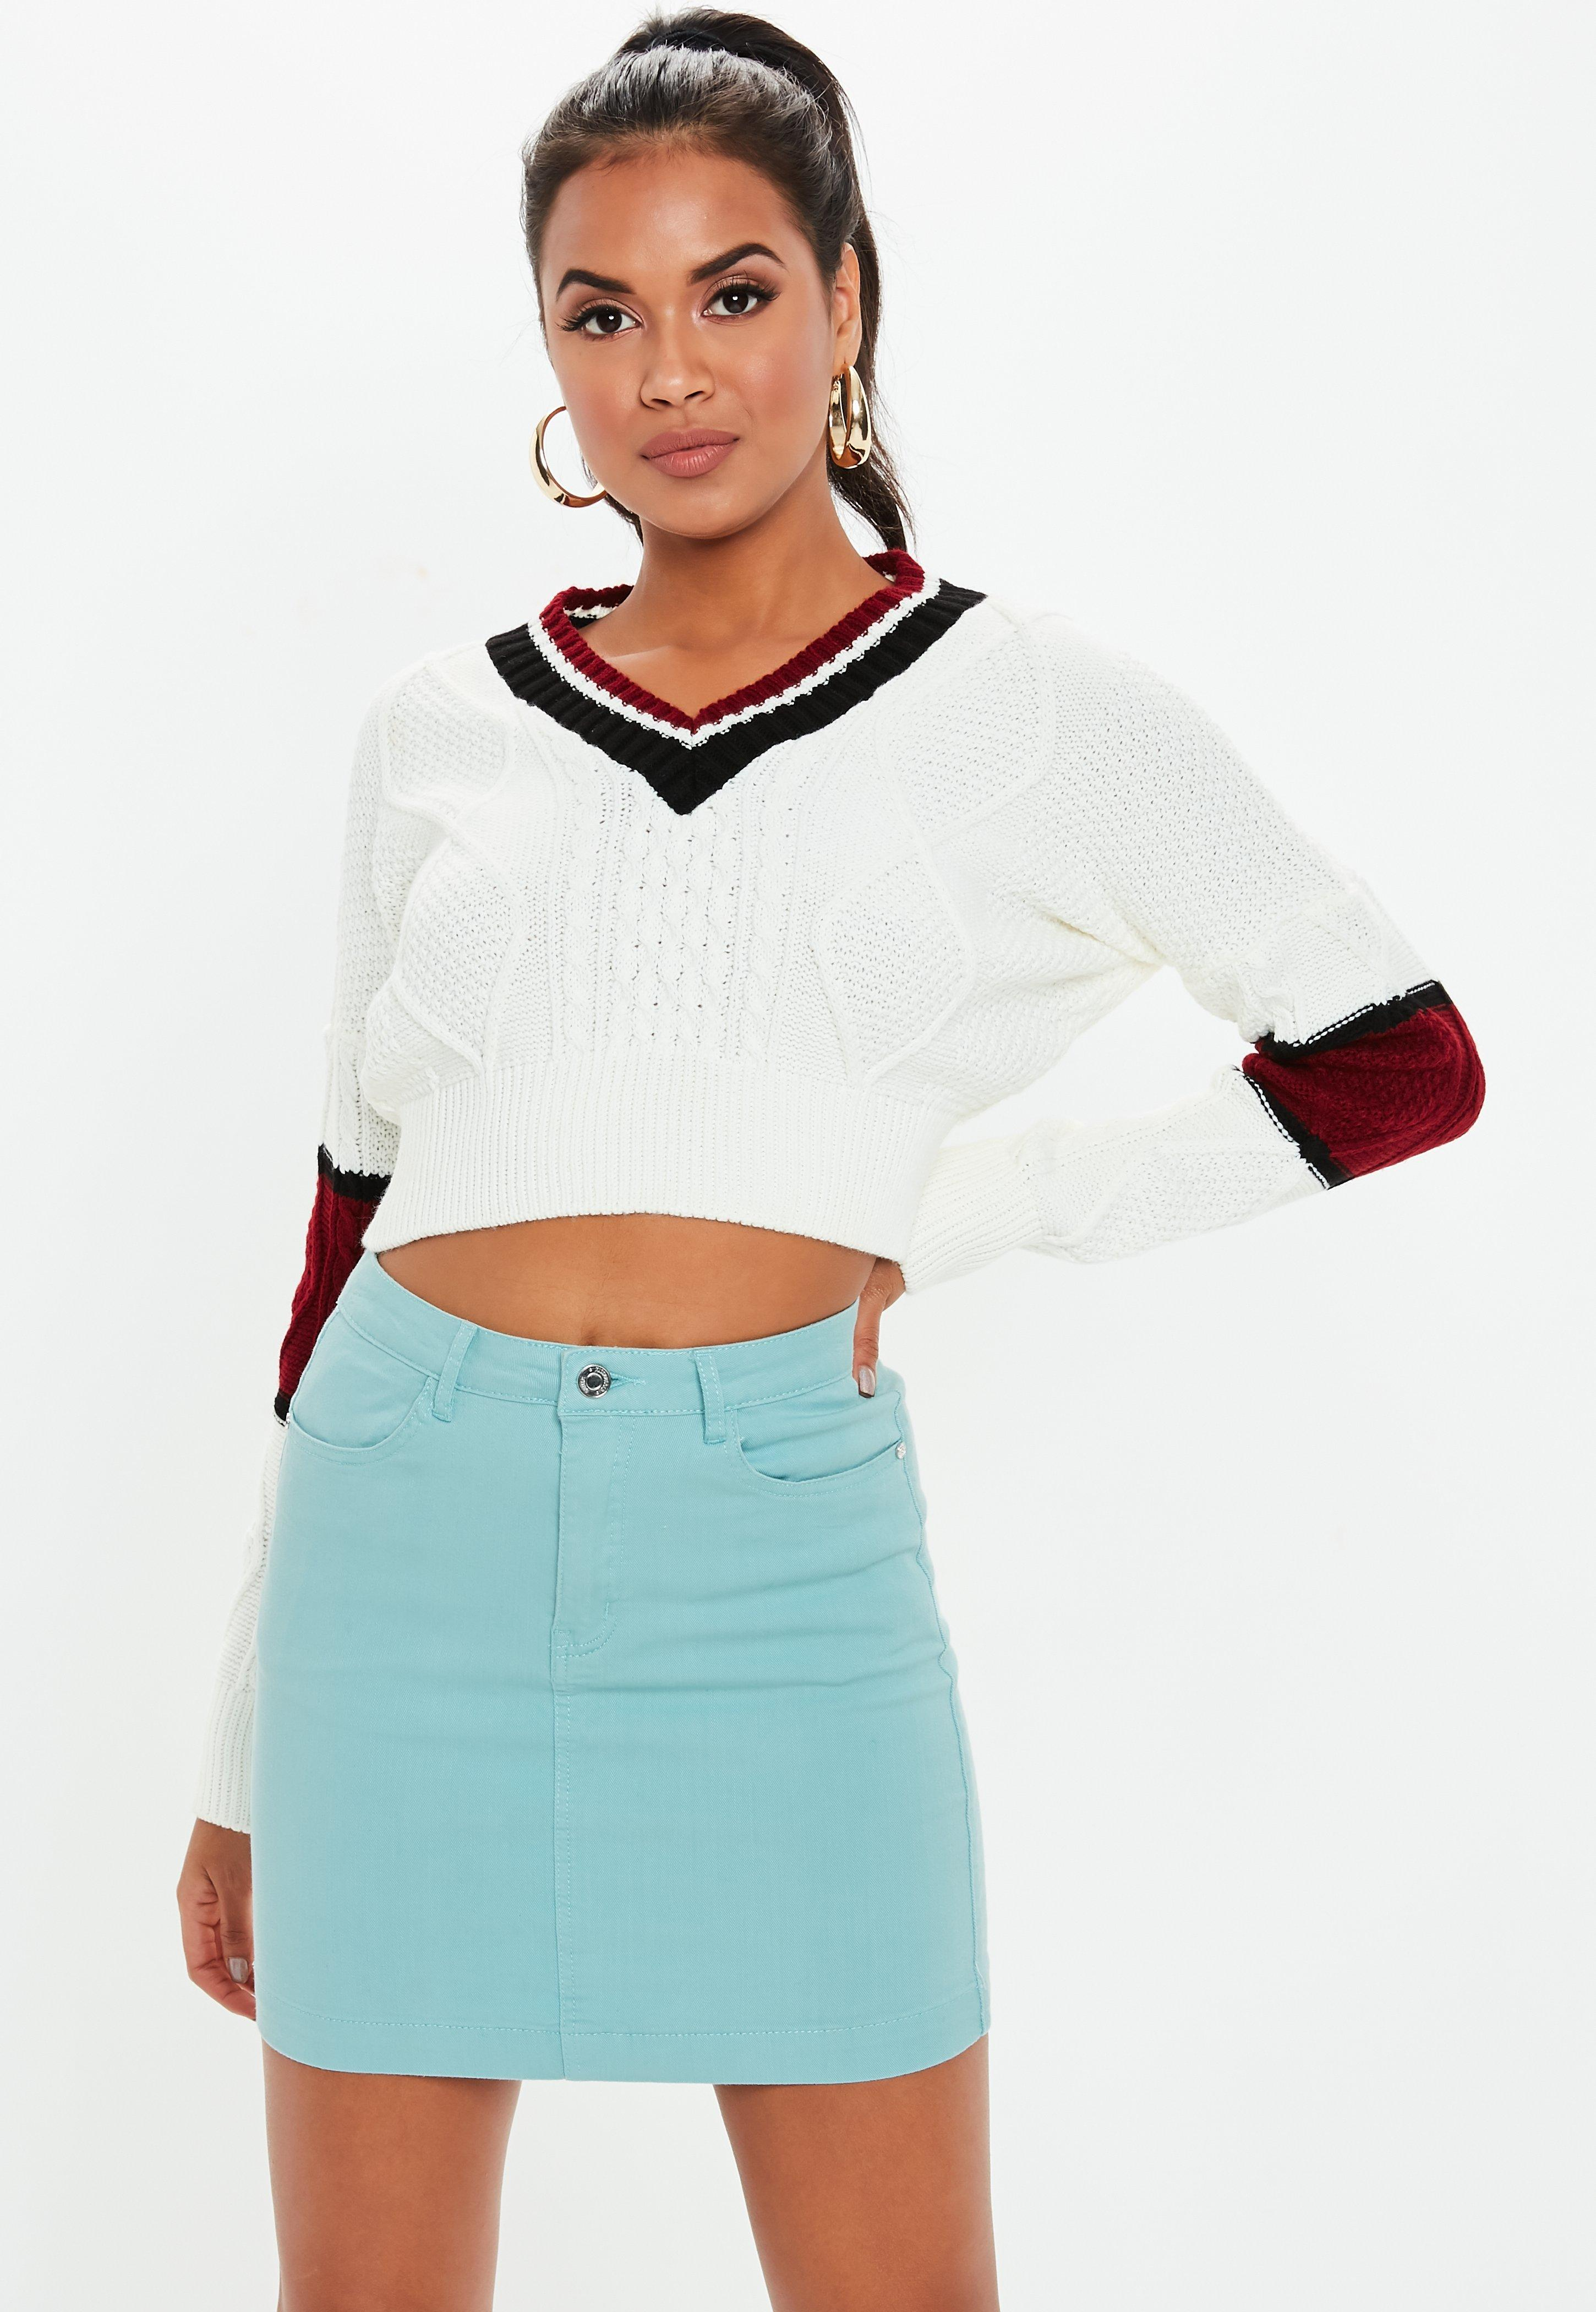 Fashion week Trend the shop the v front skirt for woman